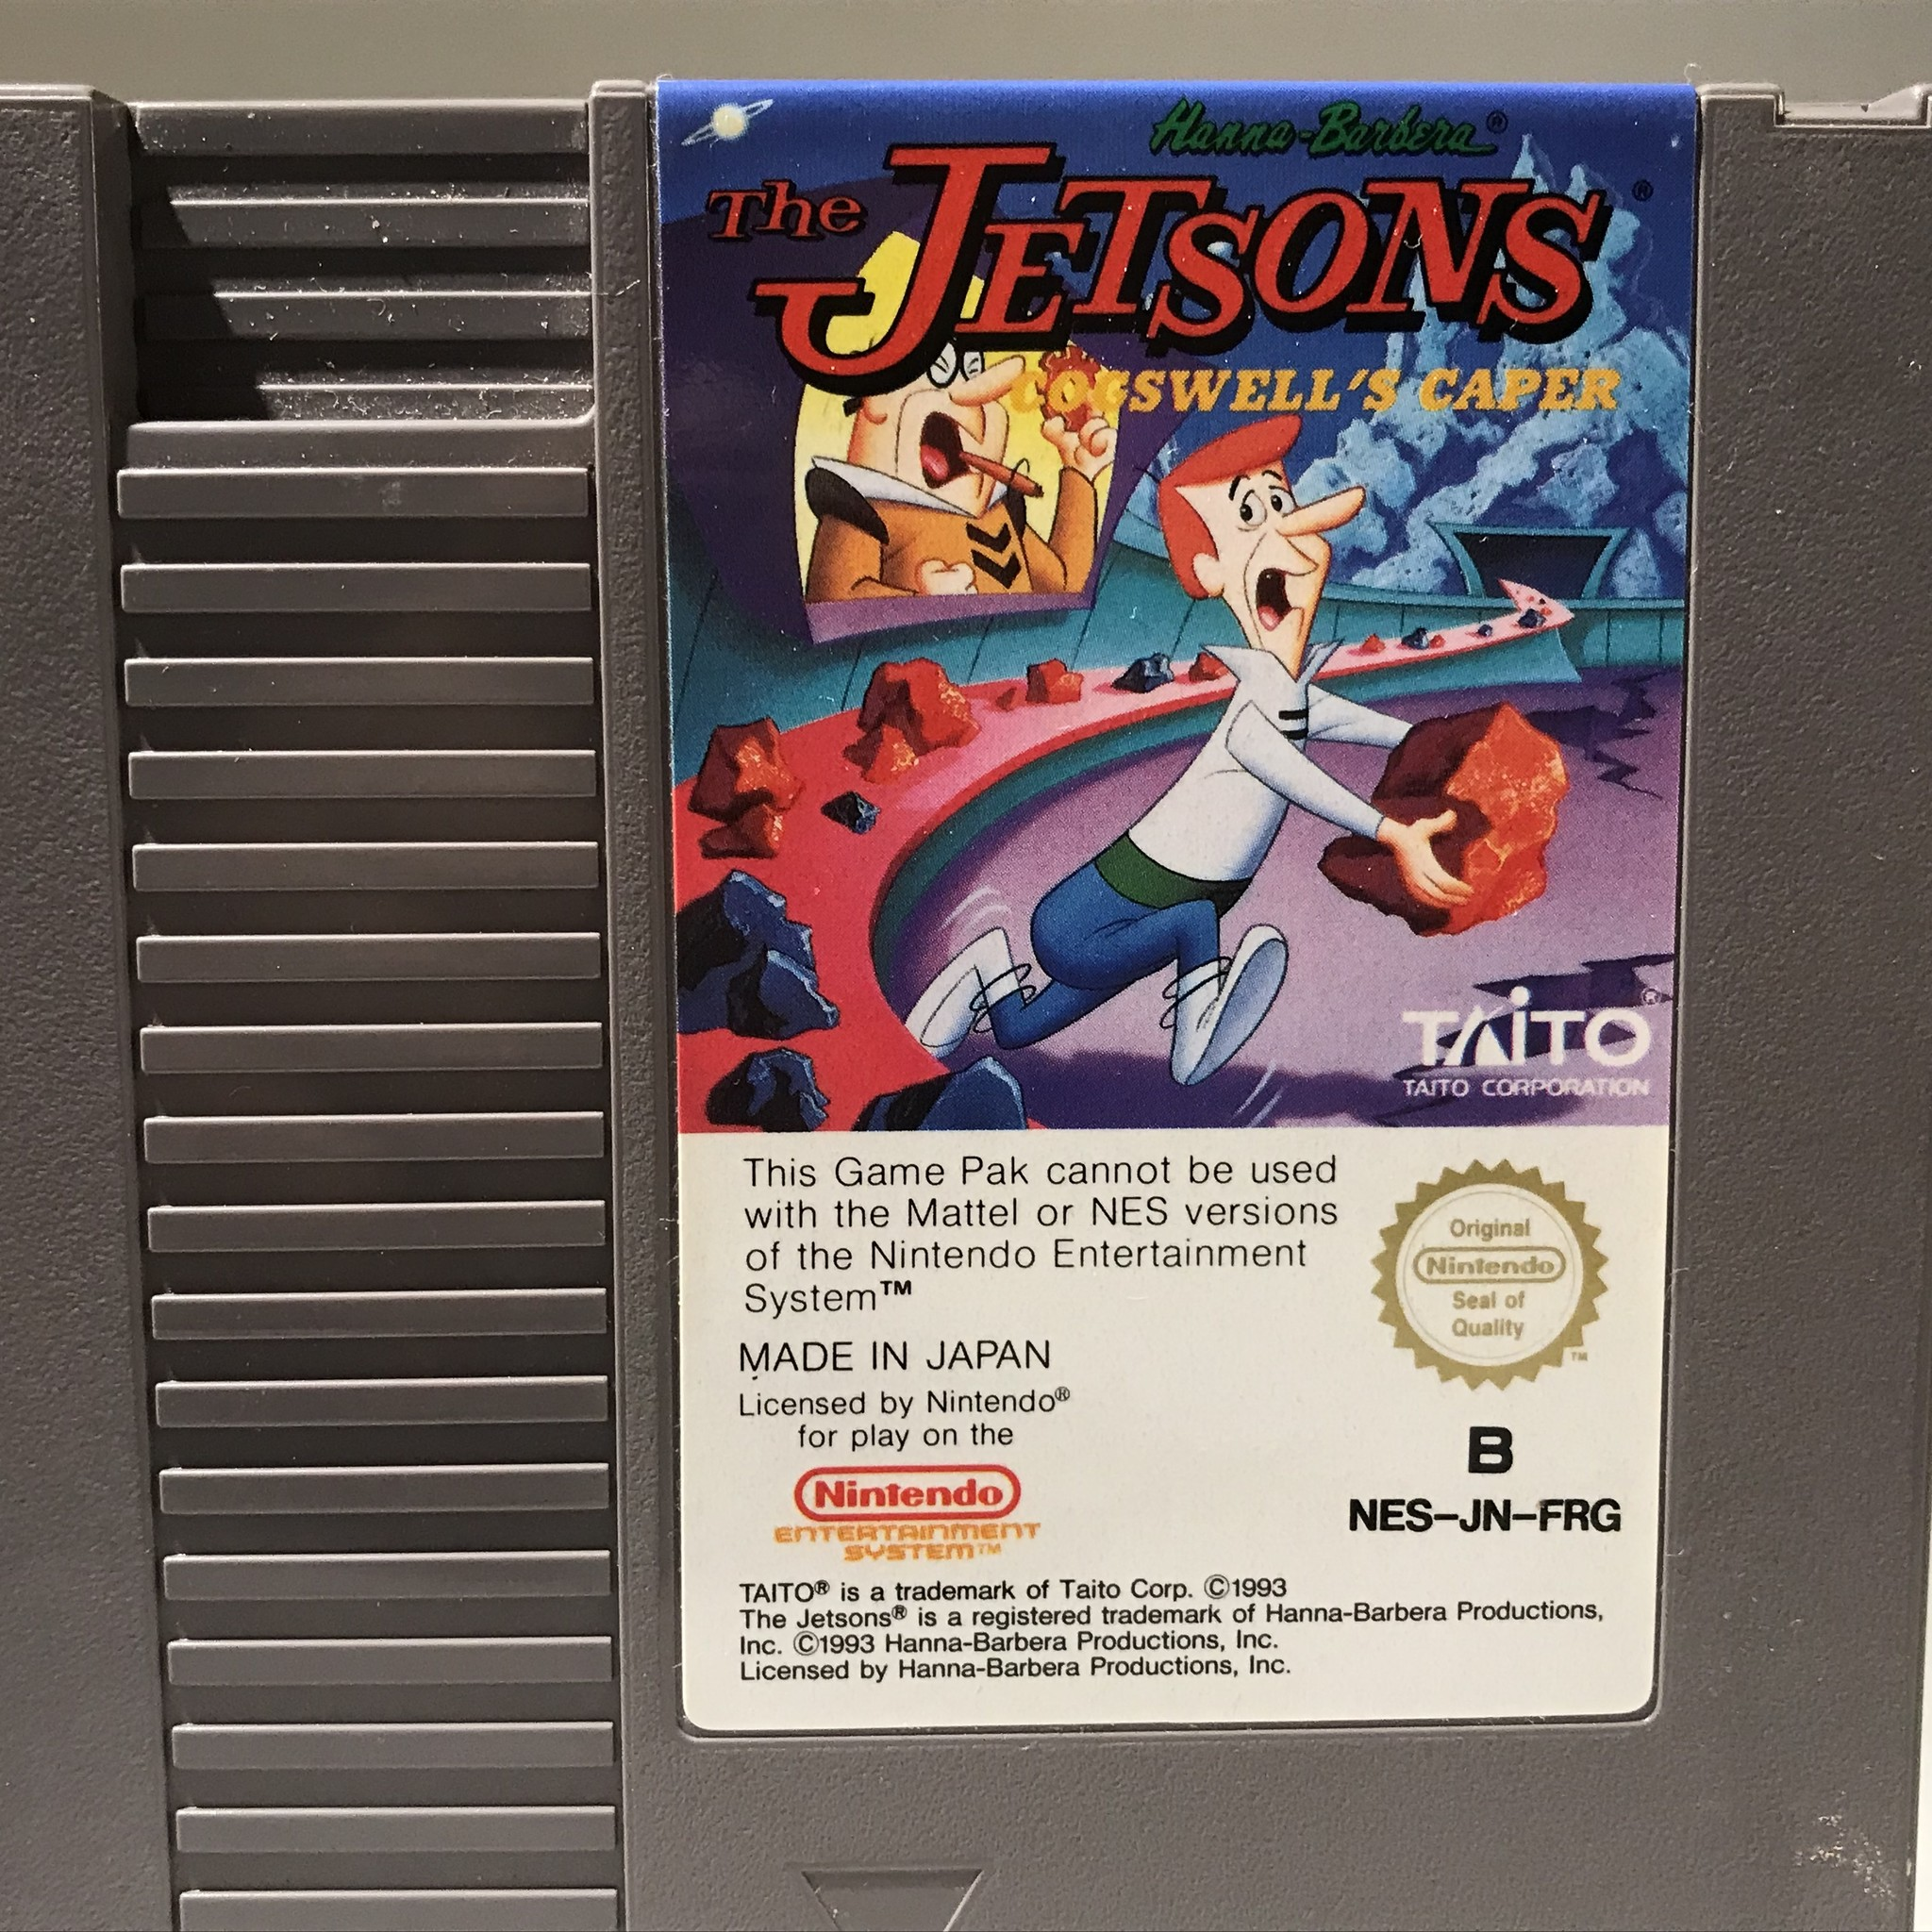 jetsons cogswell's caper nes